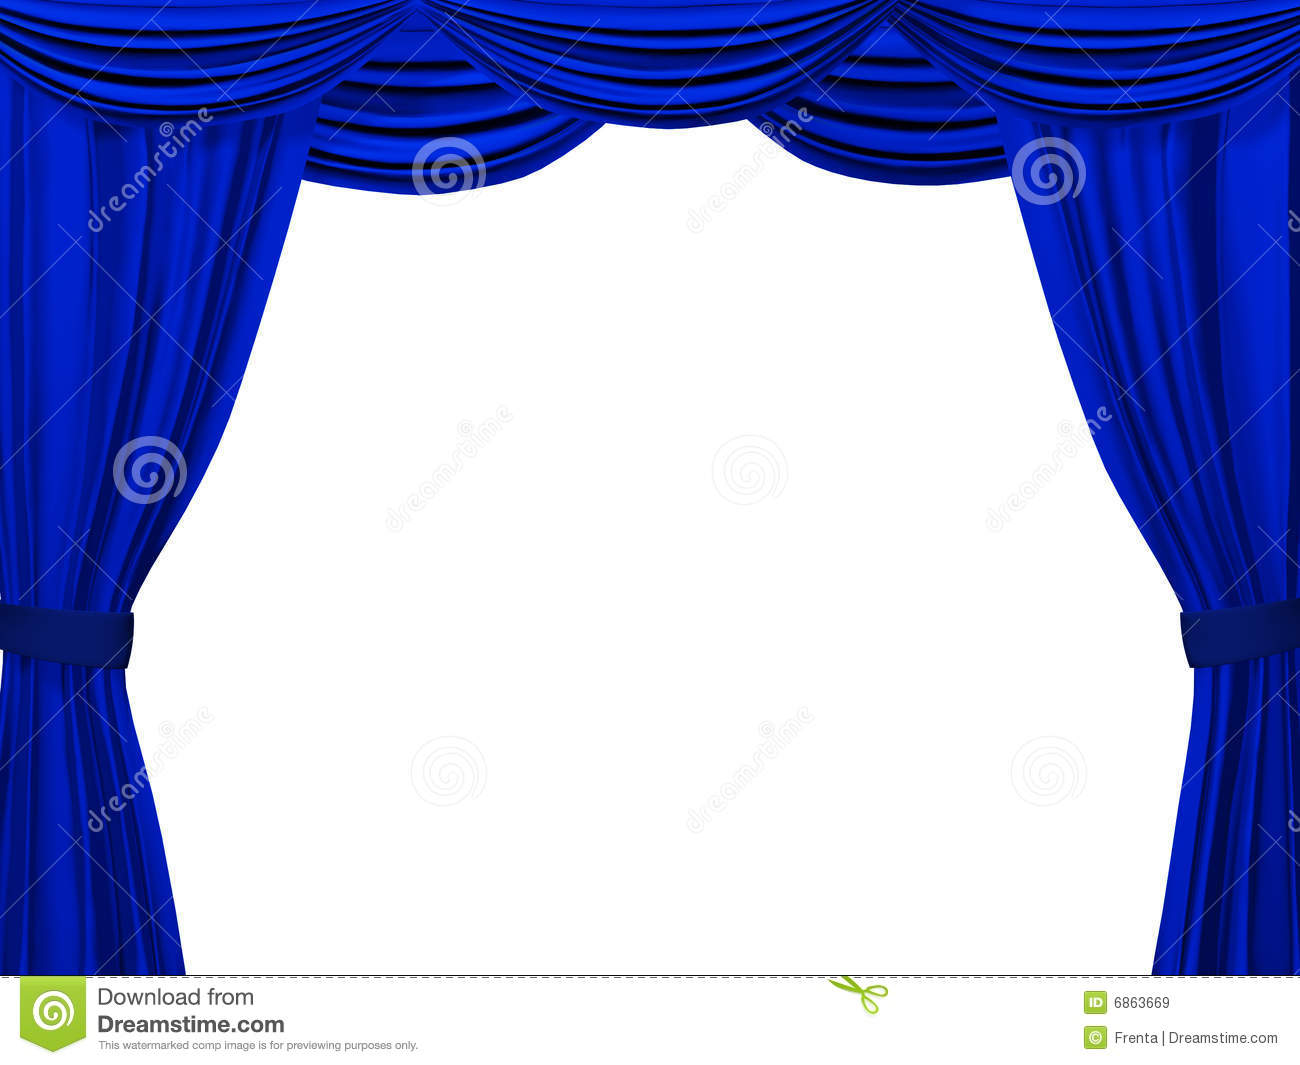 Theatrical Curtain Of Blue Color Stock Illustration